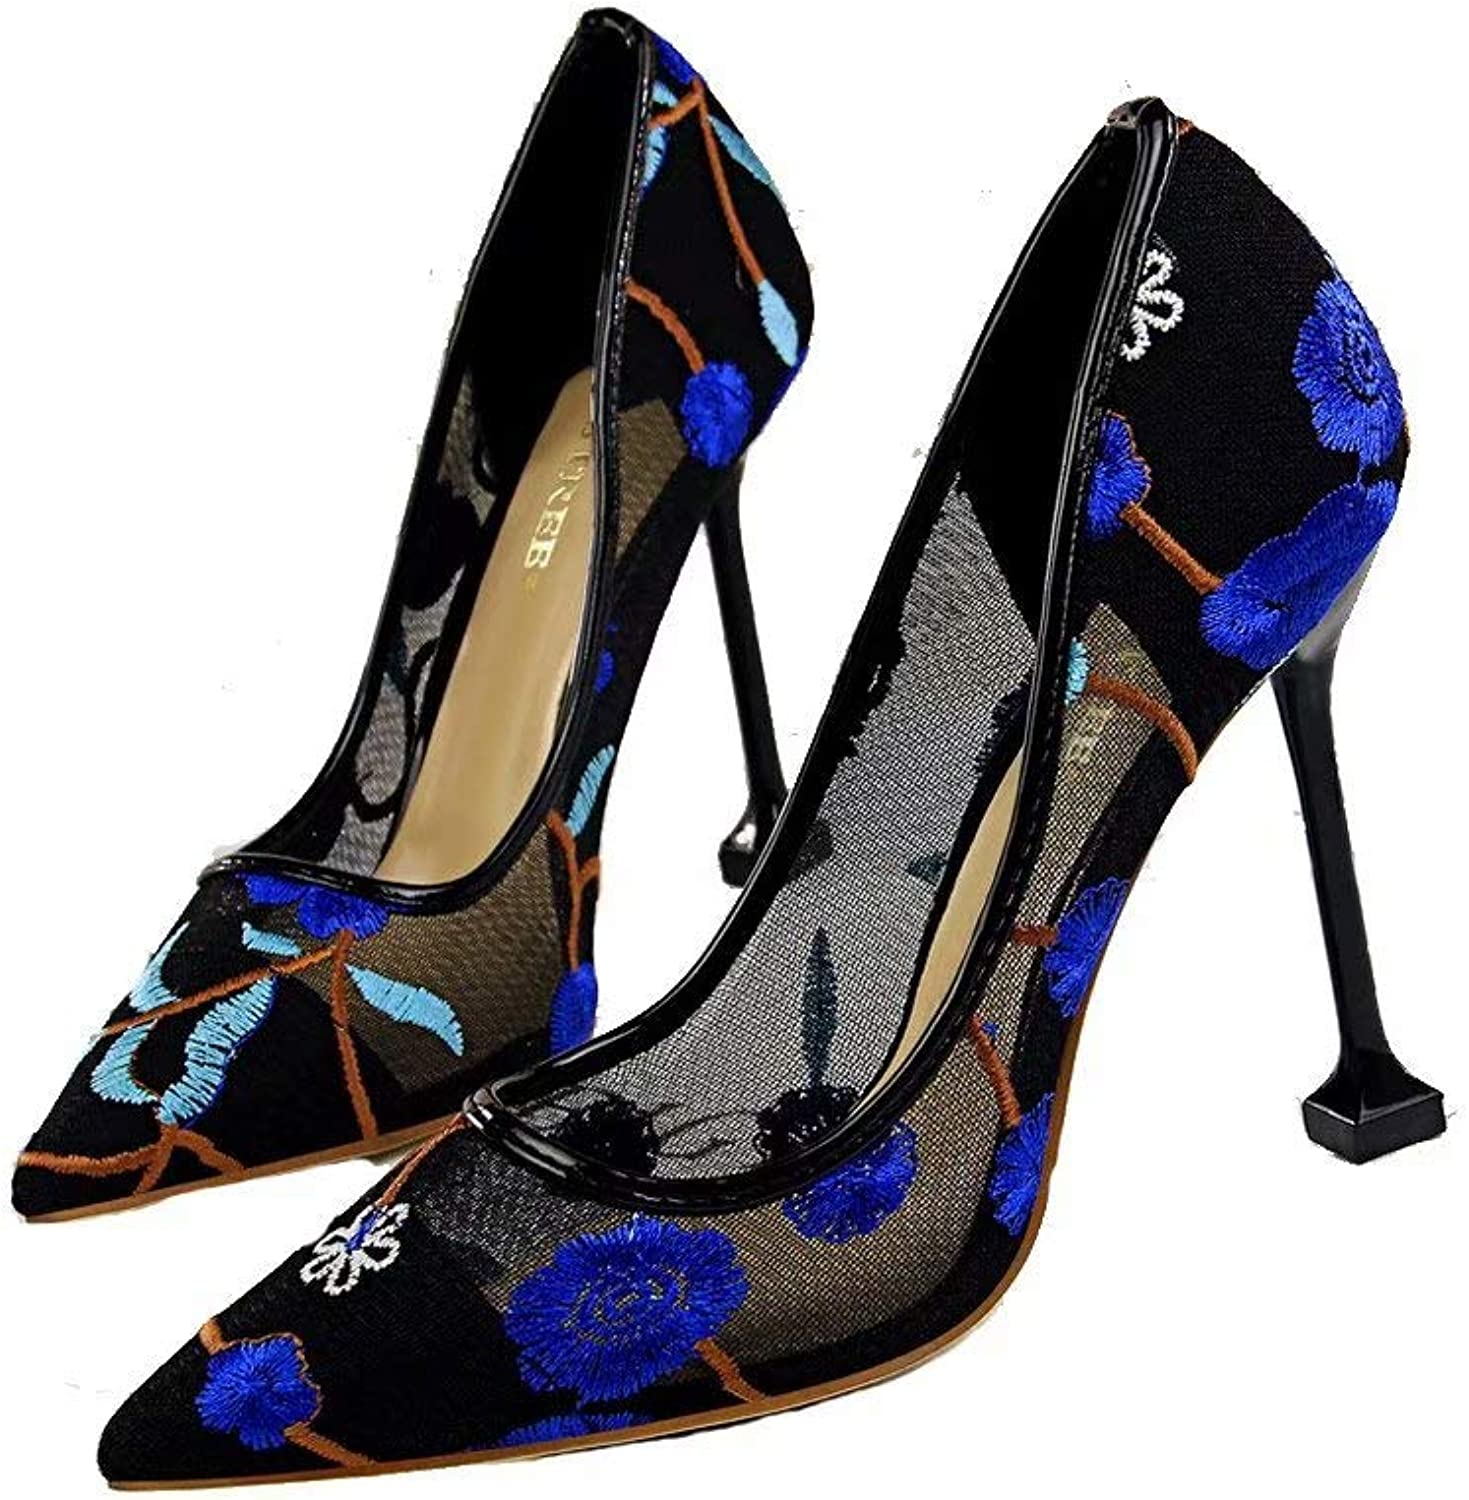 EDGssi23 Women's Embroidered pink Floral High Heels Sandal Pointed Toe Pump Dress shoes Sexy Party Wedding shoes